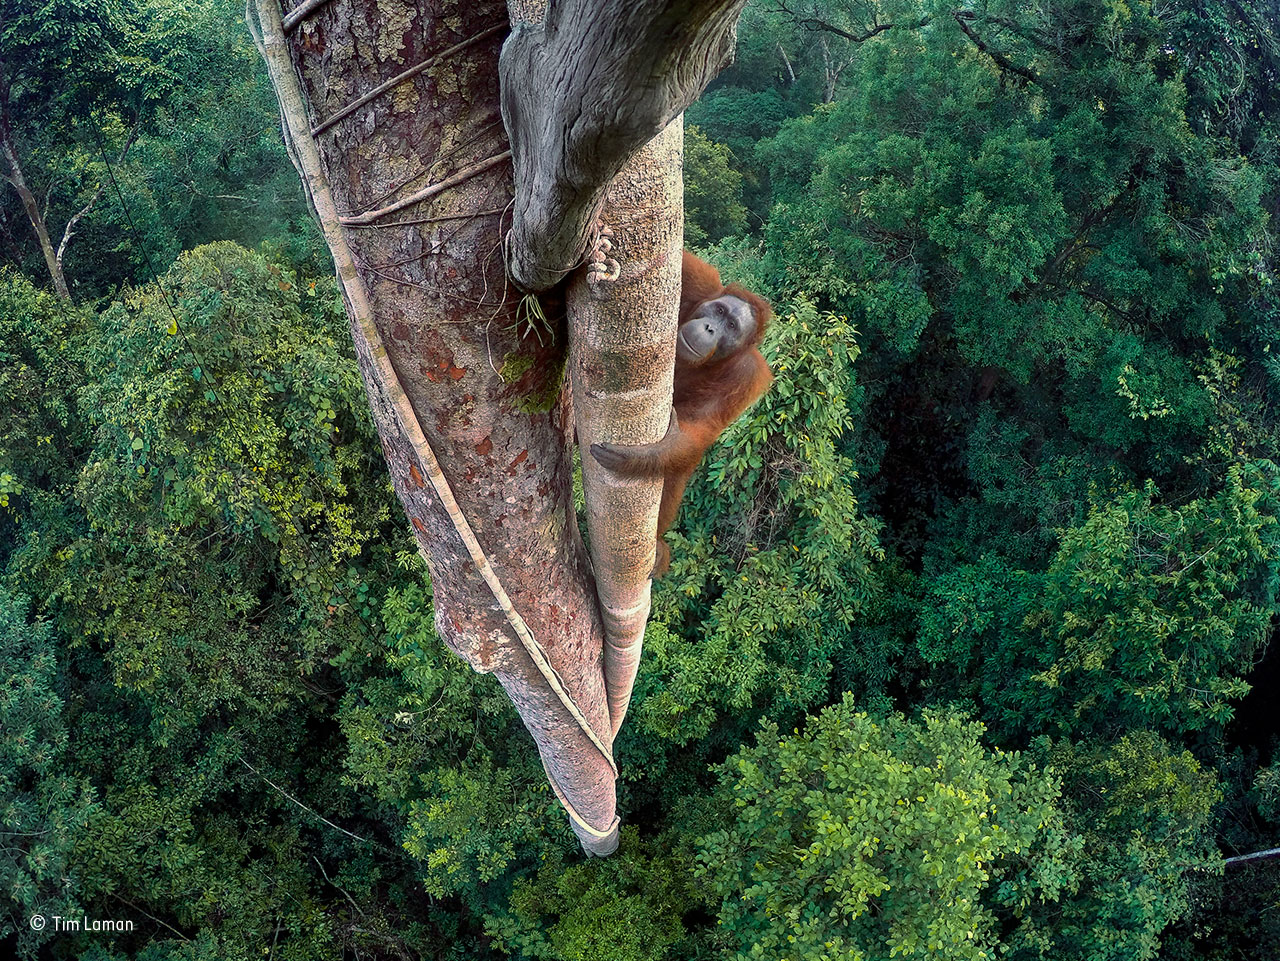 Ganador del gran premio Wildlife Photographer of the Year